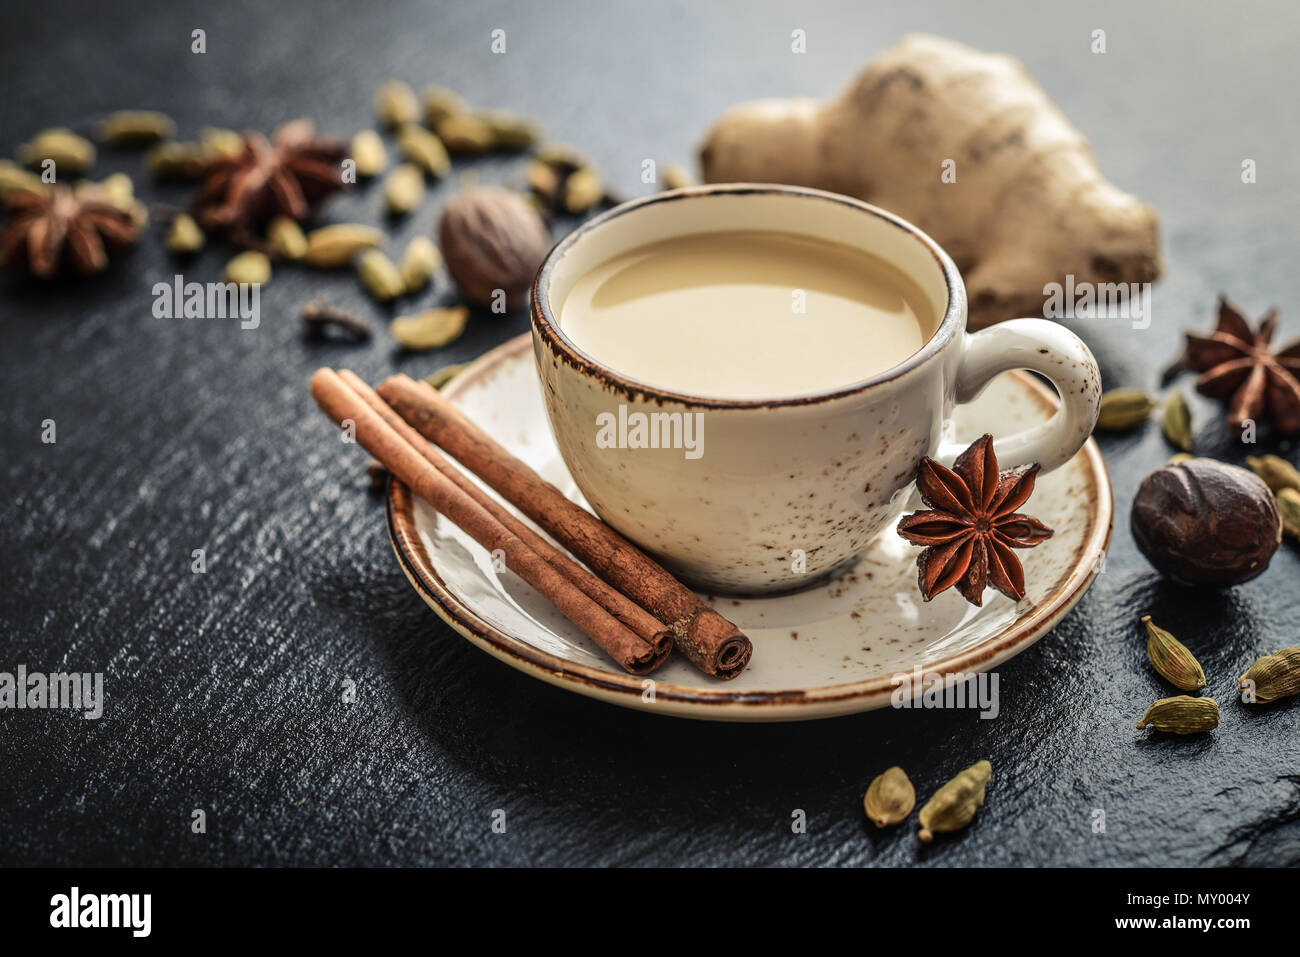 Traditional indian drink - masala tea with spices on black stone  background - Stock Image